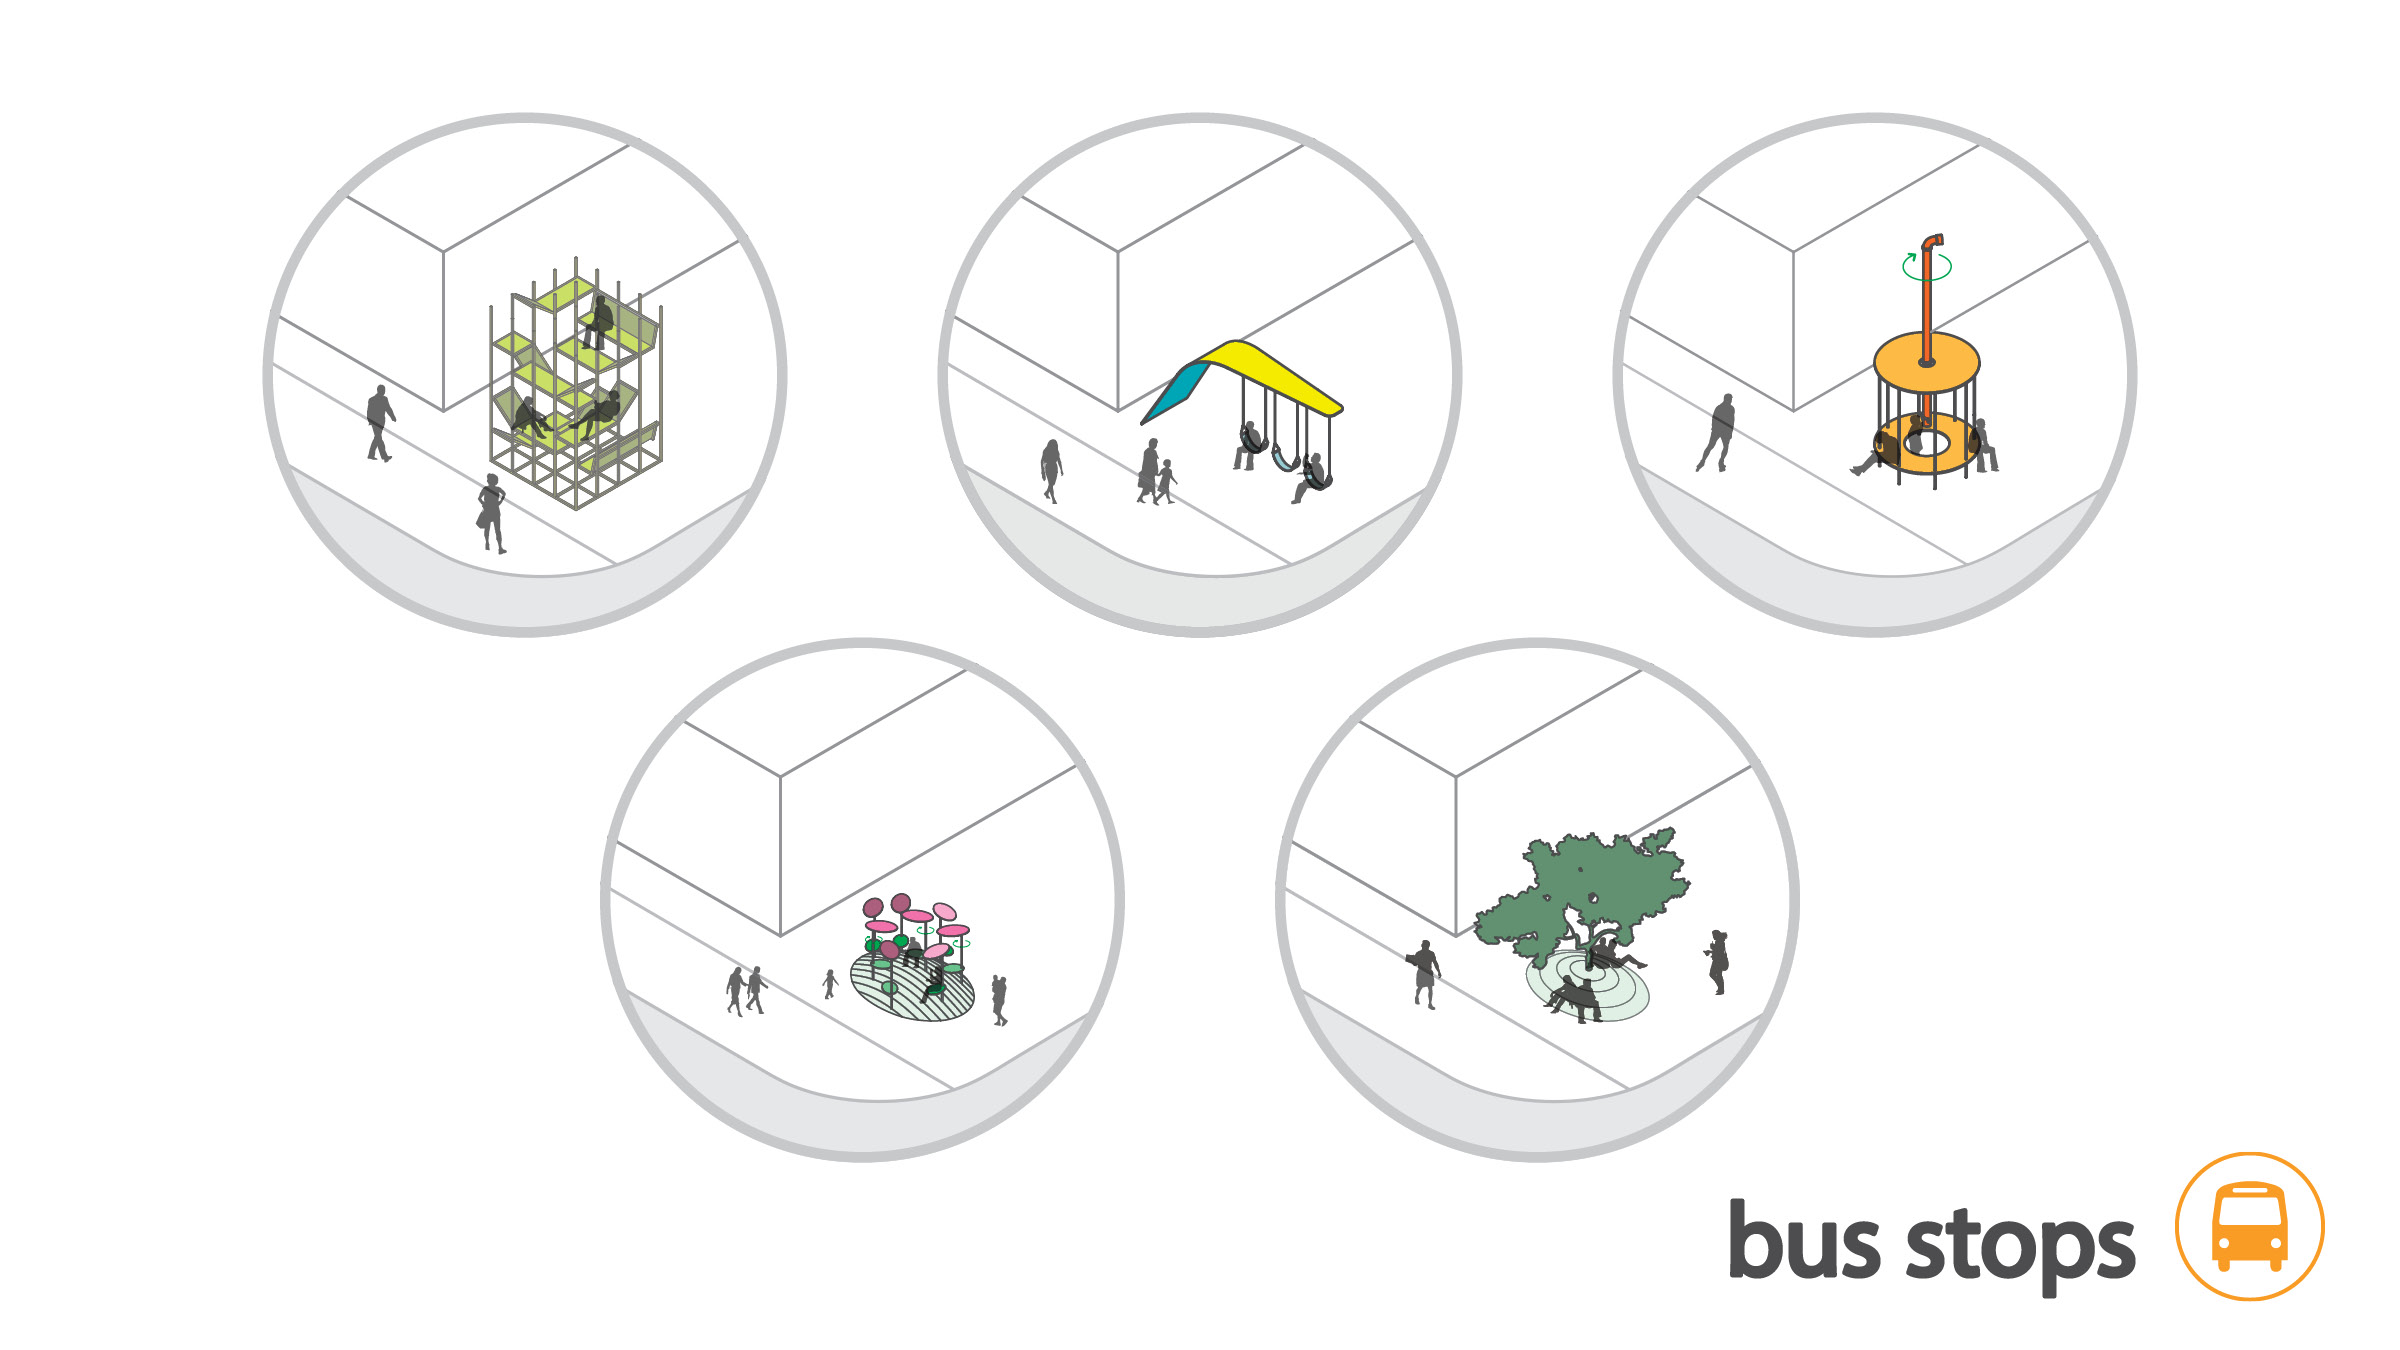 various bus stop designs to encourage the use of public transit & to reinforce the eclectic culture of lower westheimer